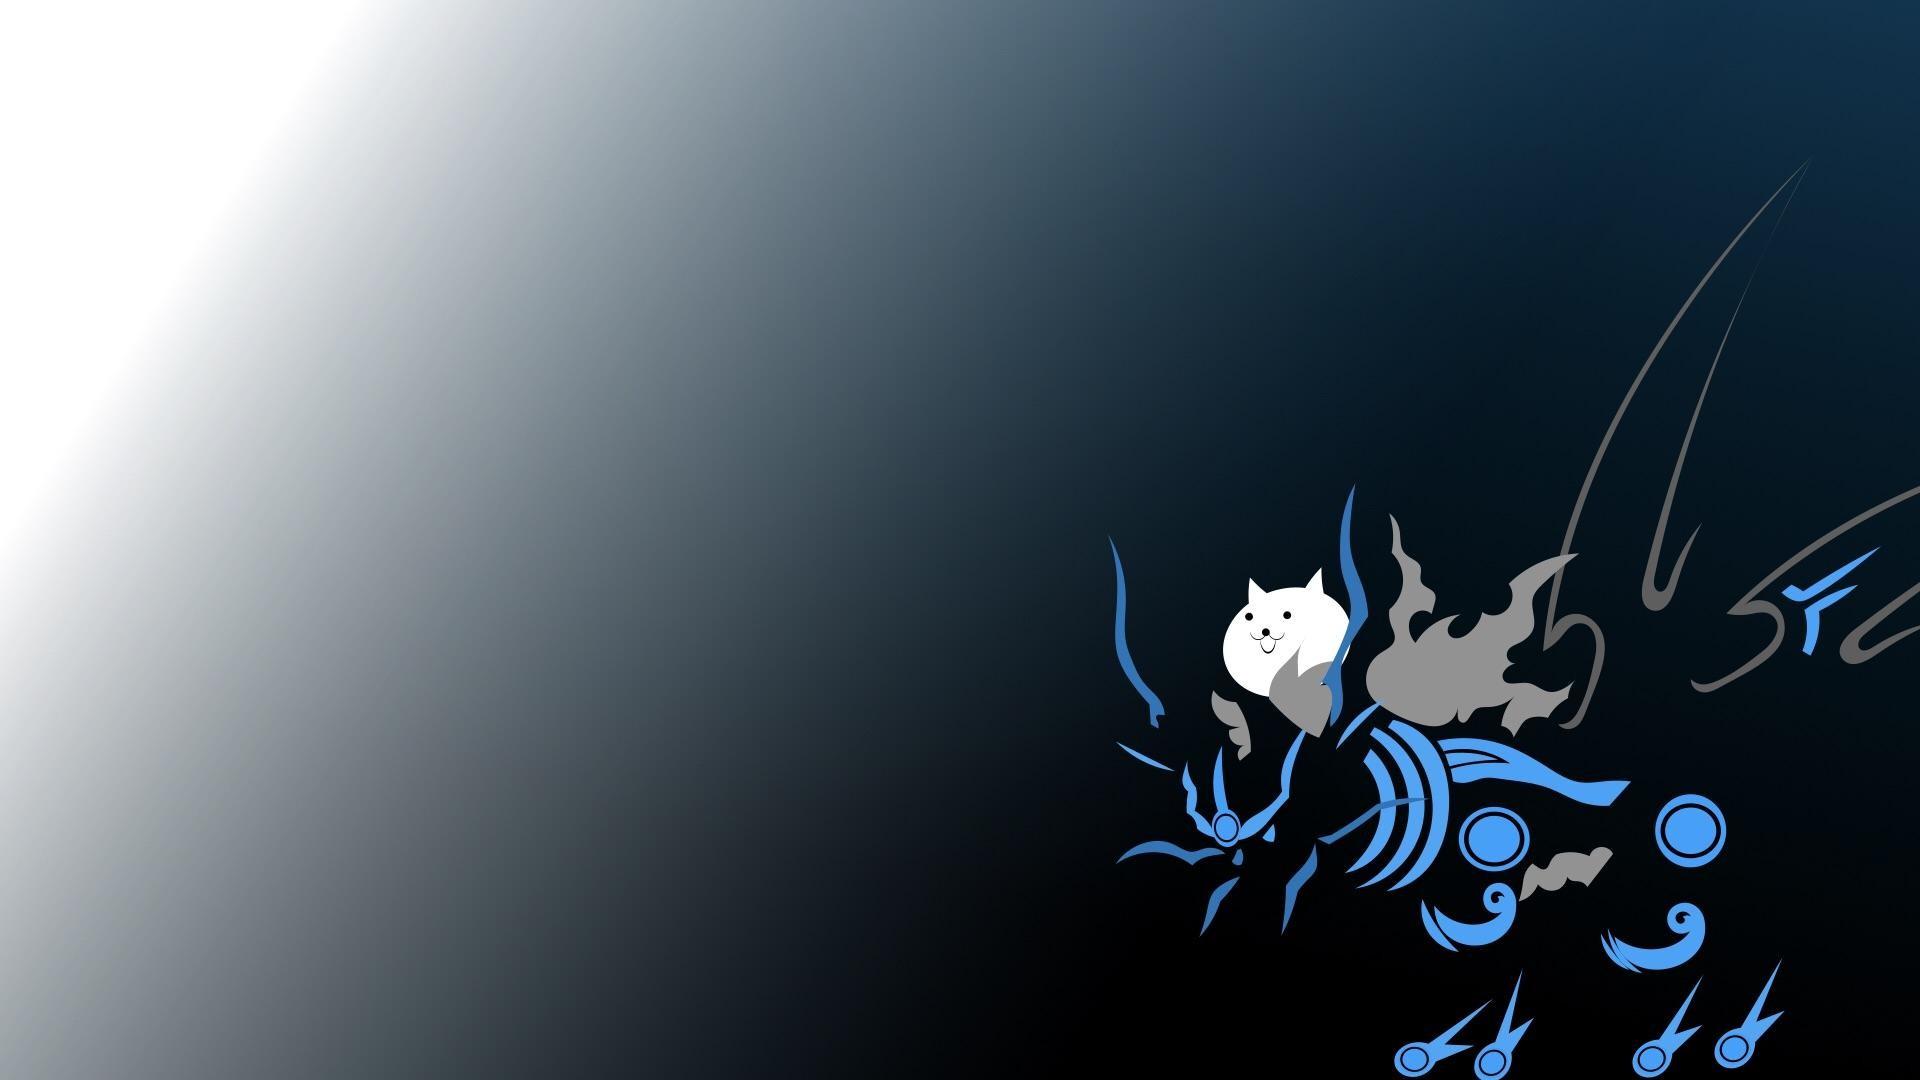 1920x1080 Fan made shadow gao wallpaper ill be adding a mitama on the left feel free  to